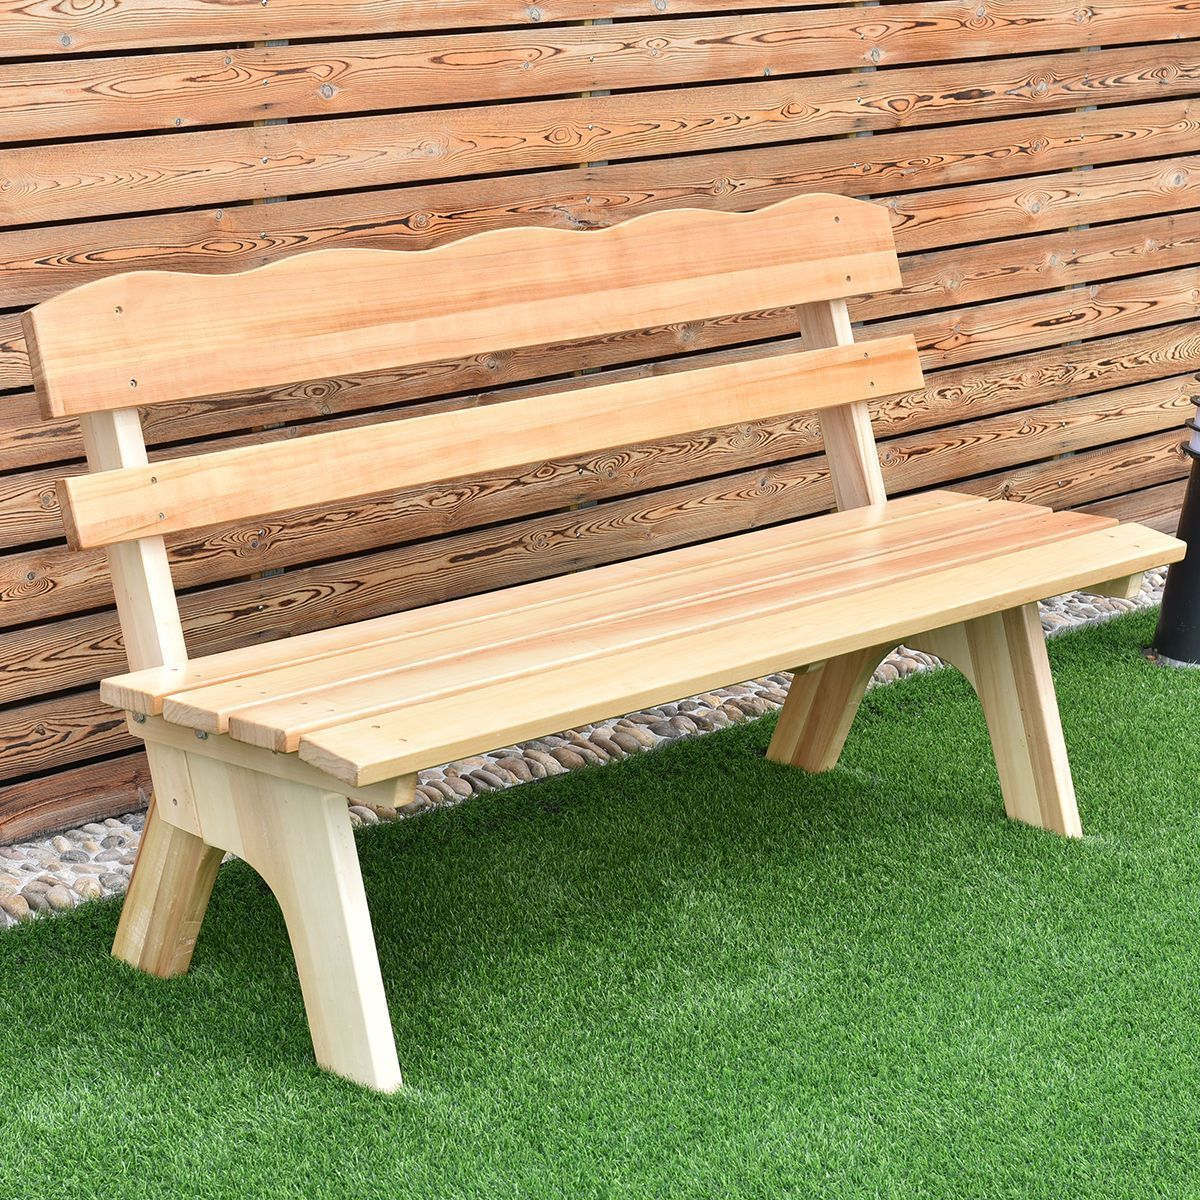 5 Ft 3 Seats Outdoor Wooden Garden Bench Chair Modern Wood Within Wood Garden Benches (View 22 of 25)